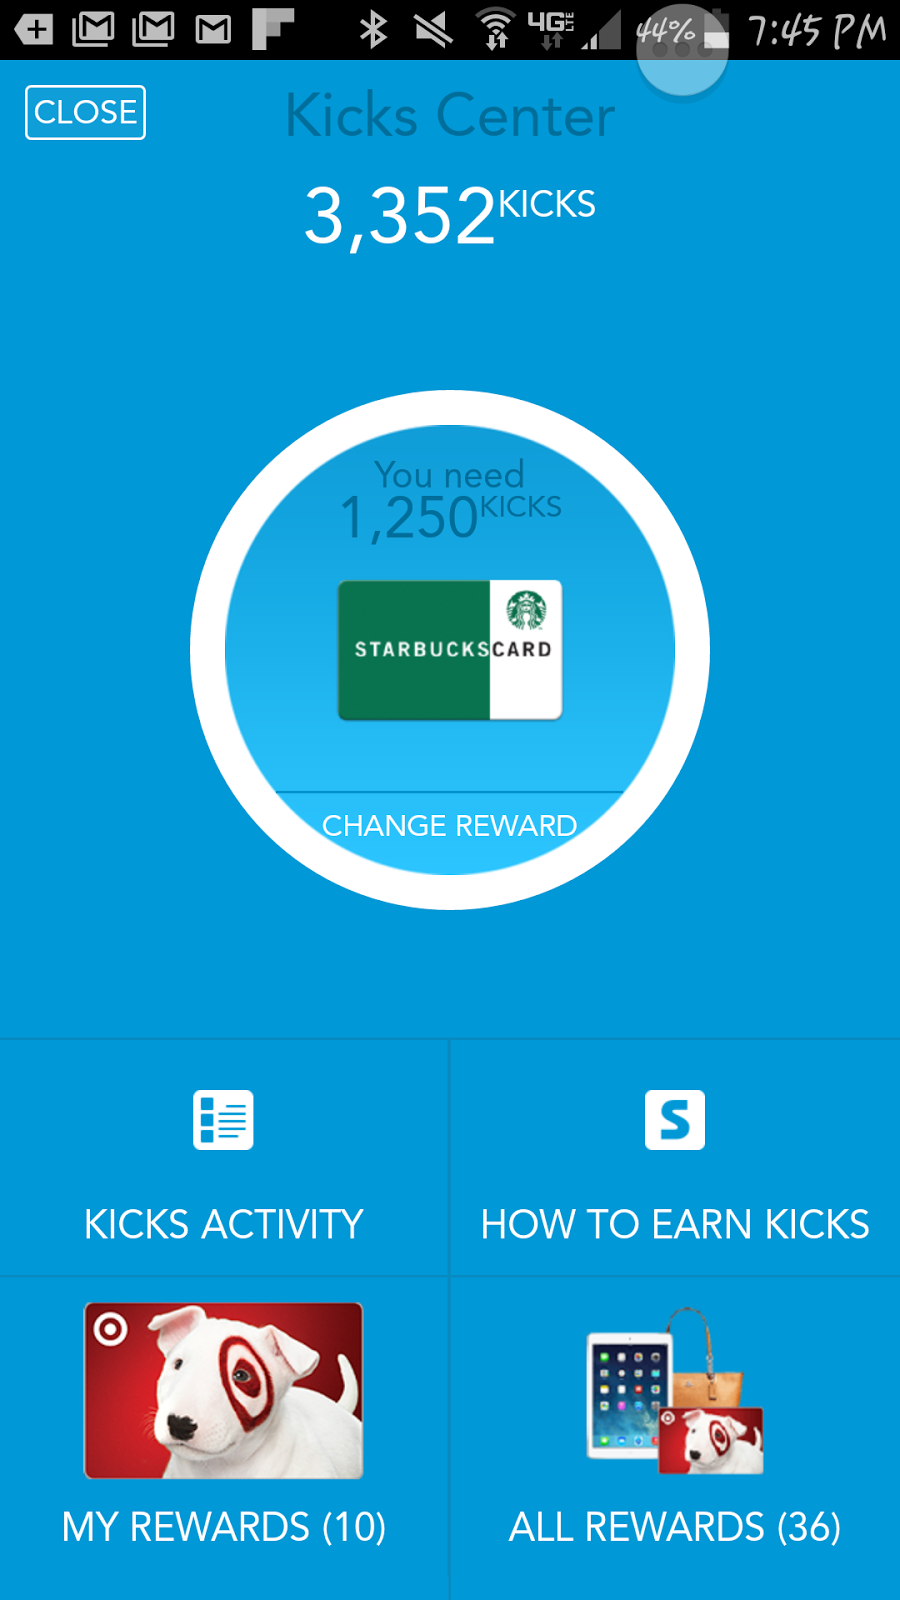 shopkick app kicks showing kicks and target my rewards and all rewards option